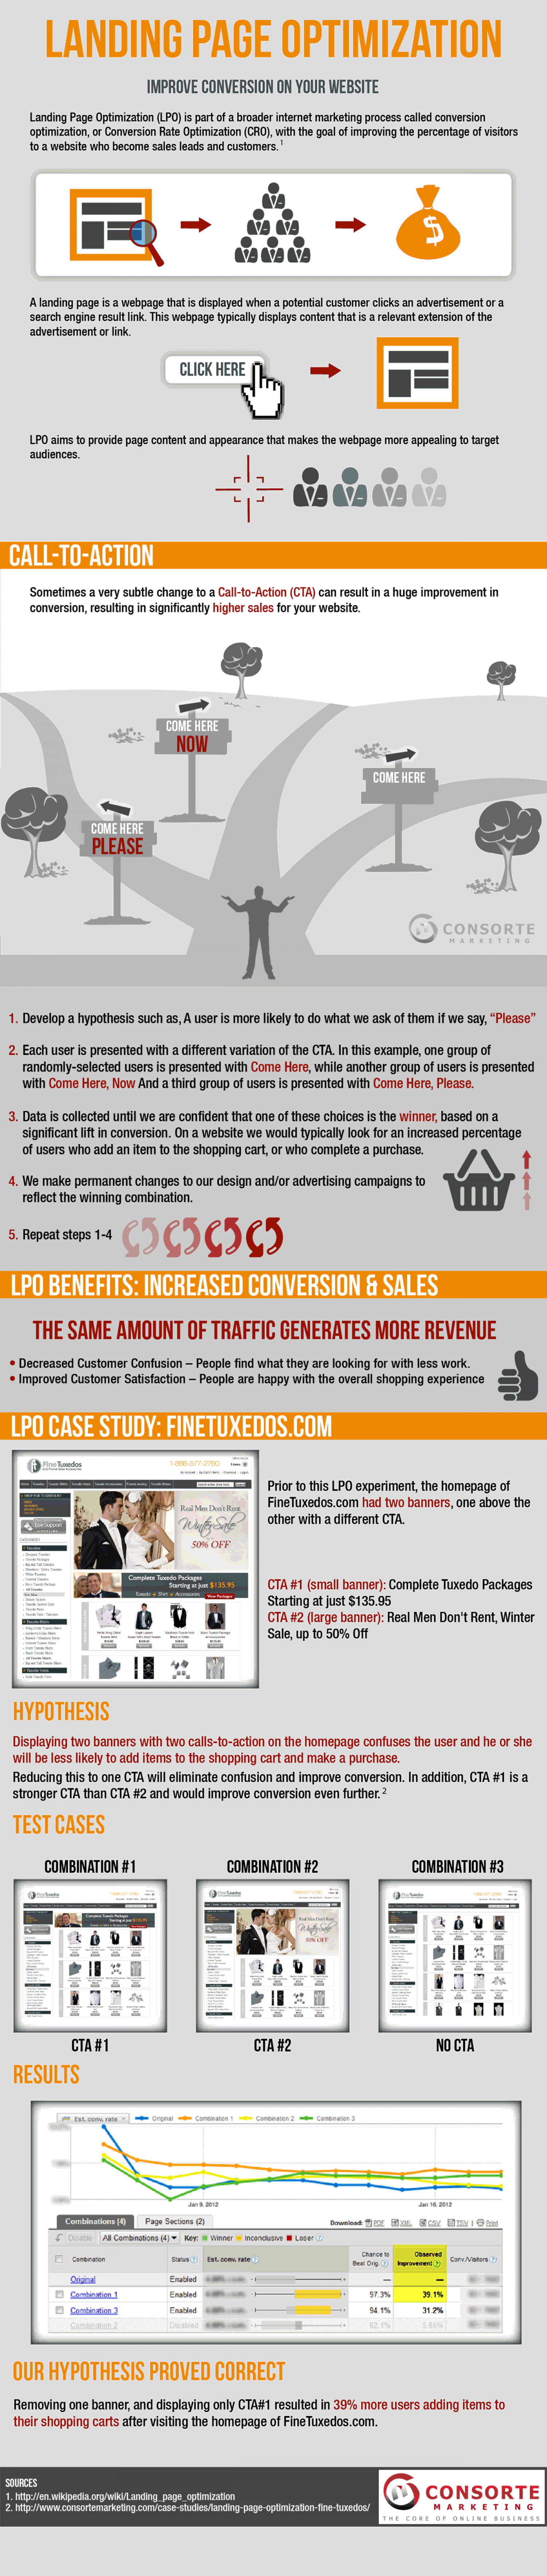 Landing Page Optimization Infographic